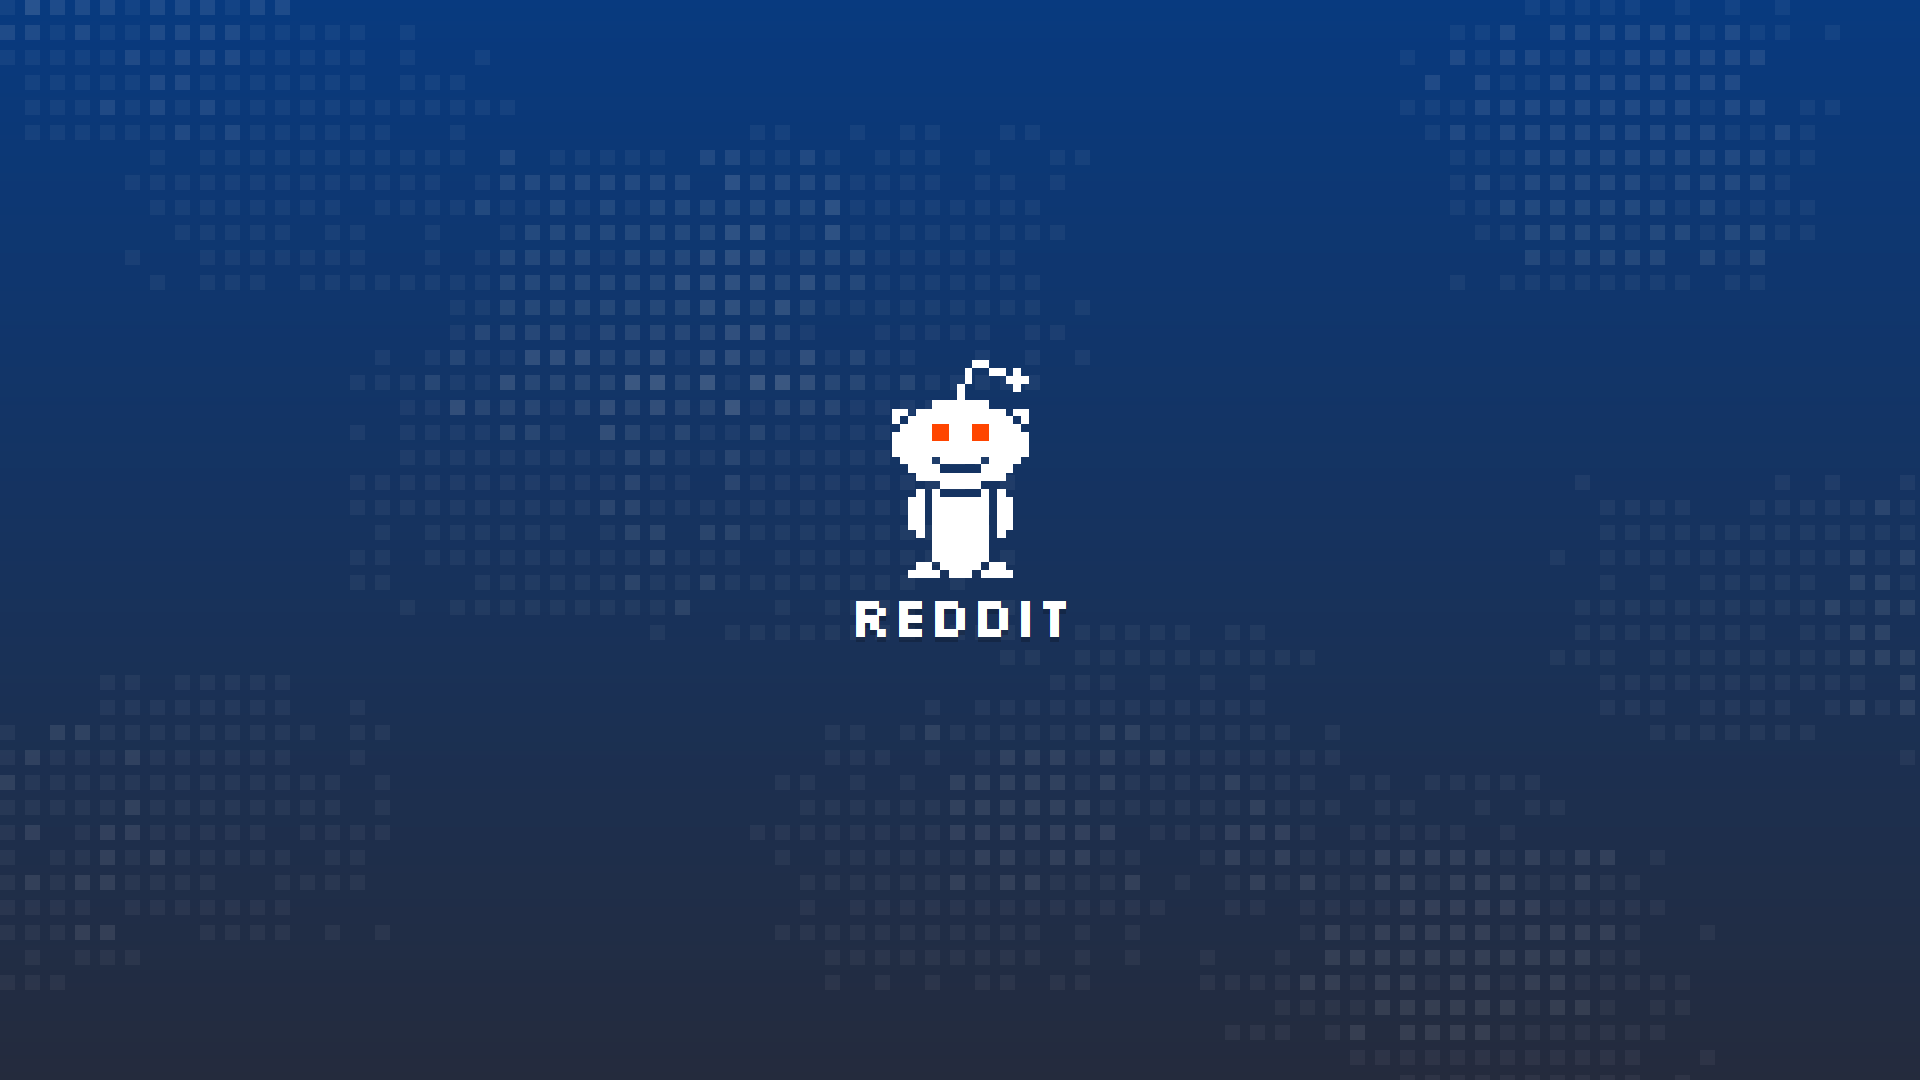 Reddit Hd Logo 4k Wallpapers Images Backgrounds Photos And Pictures